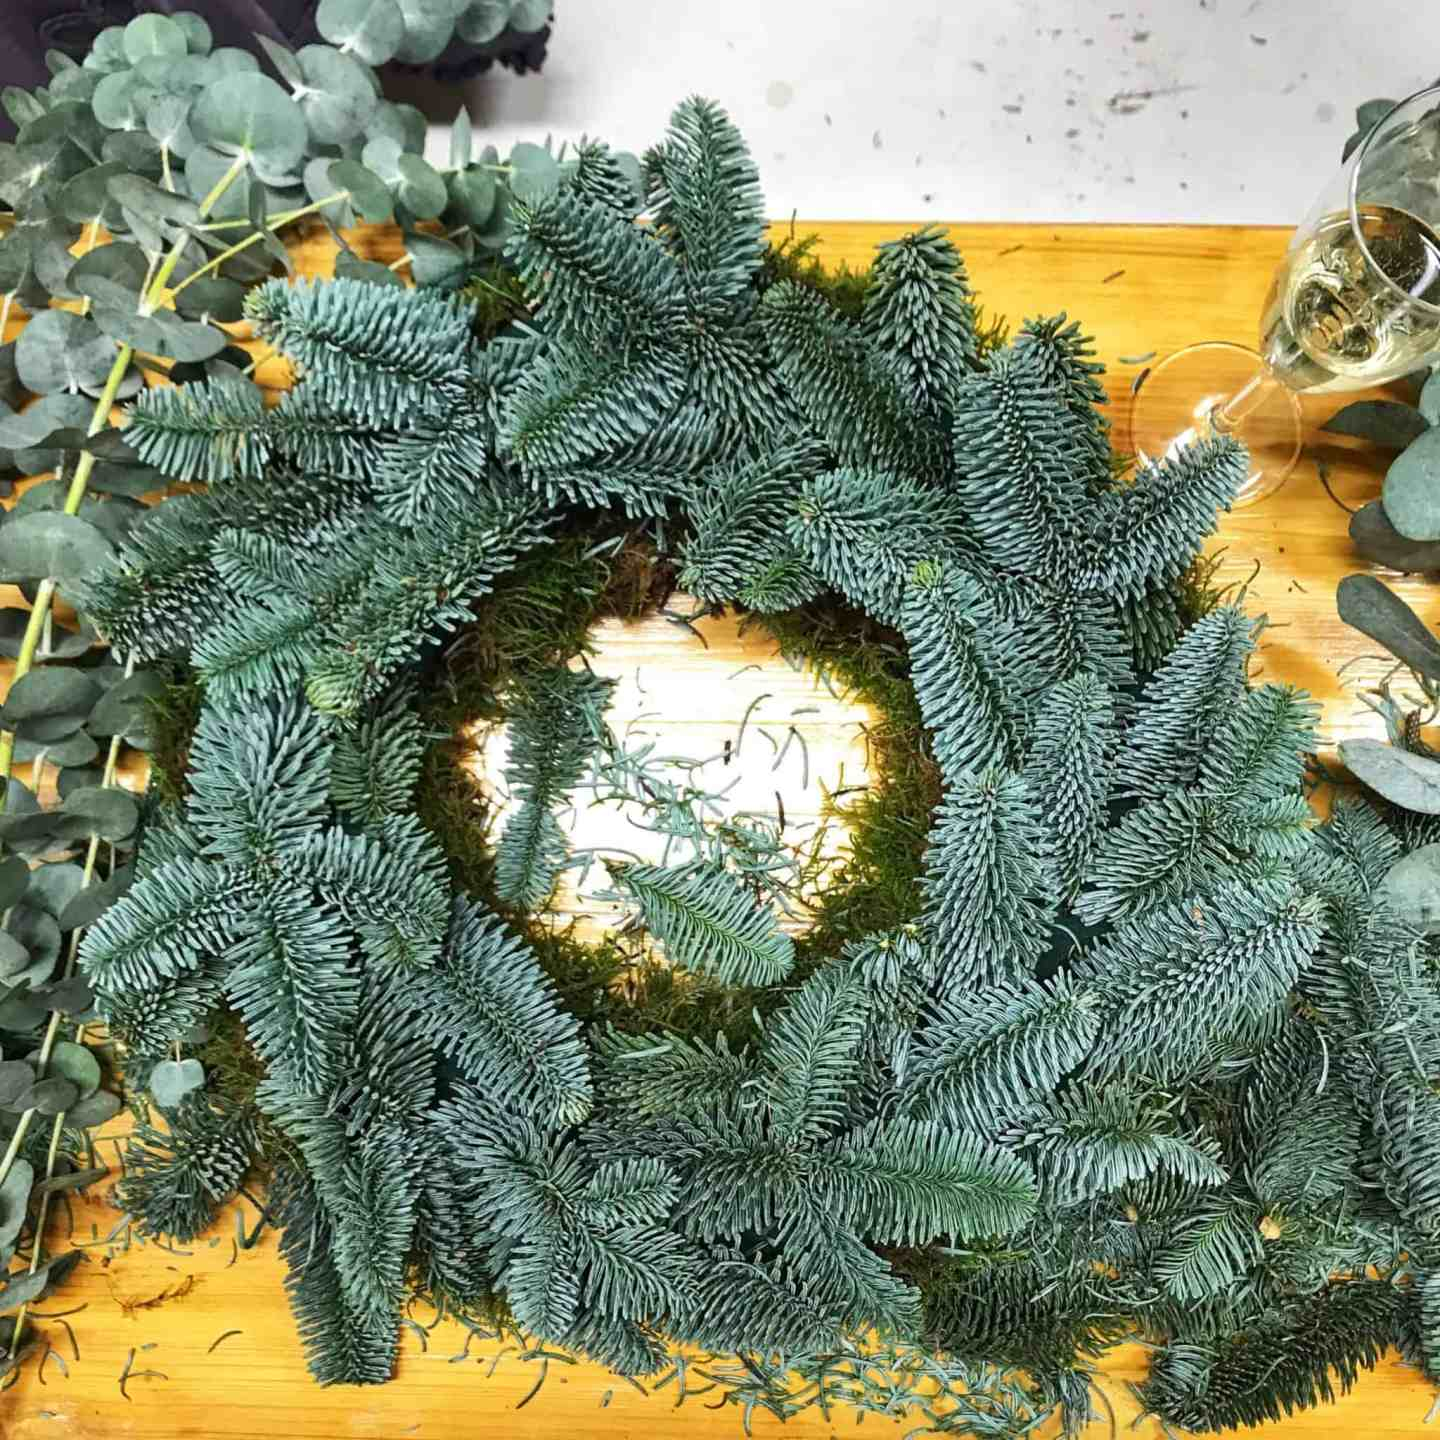 First steps in making a contemporary Christmas wreath